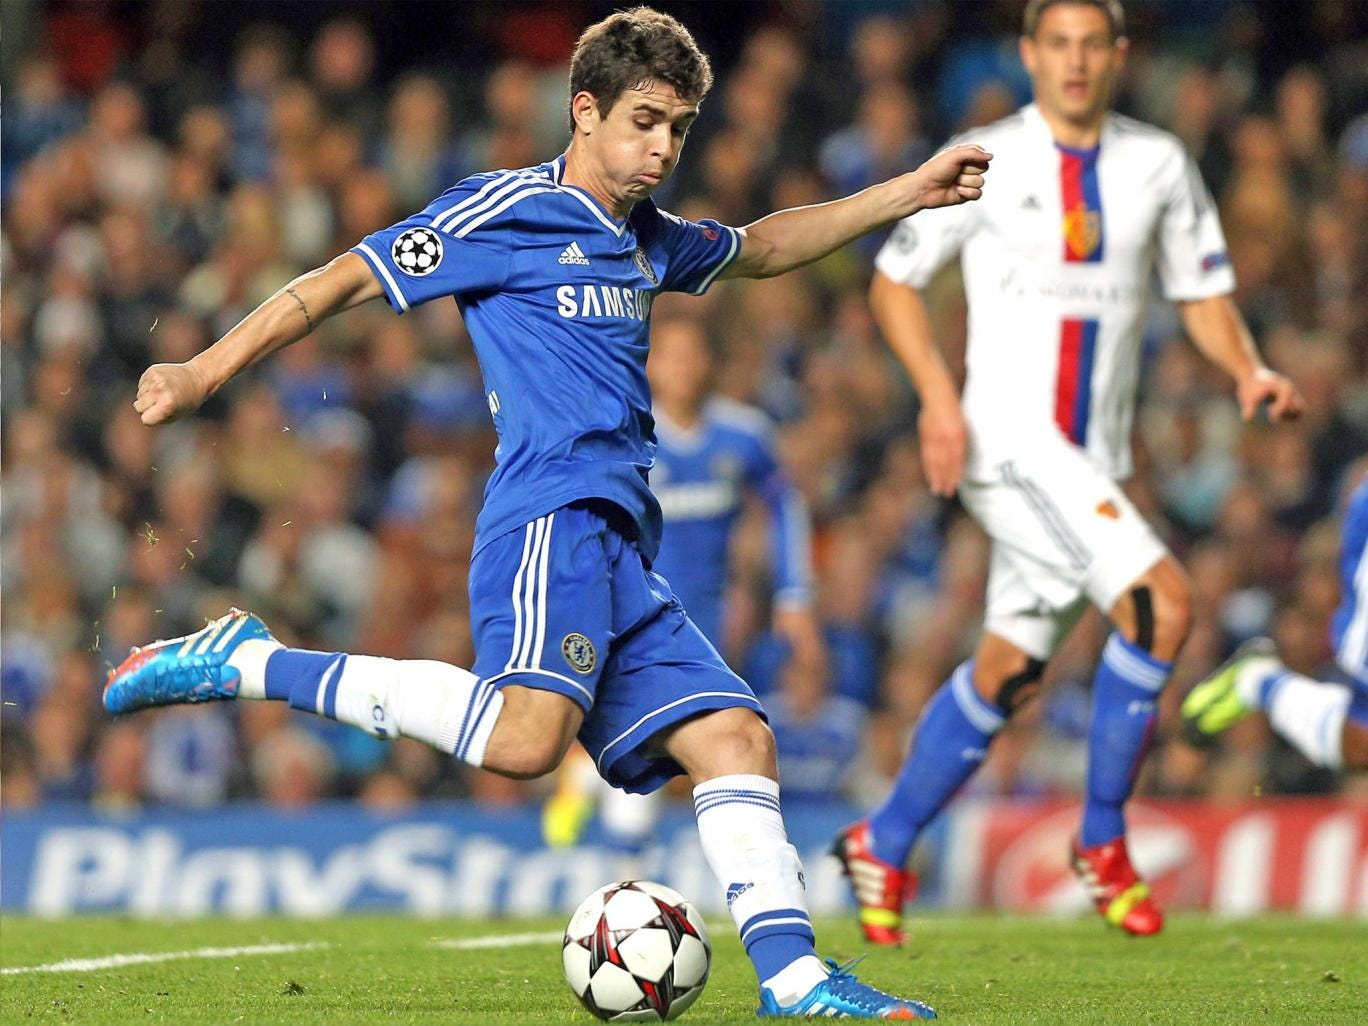 Oscar strikes to give Chelsea the lead on the stroke of half-time